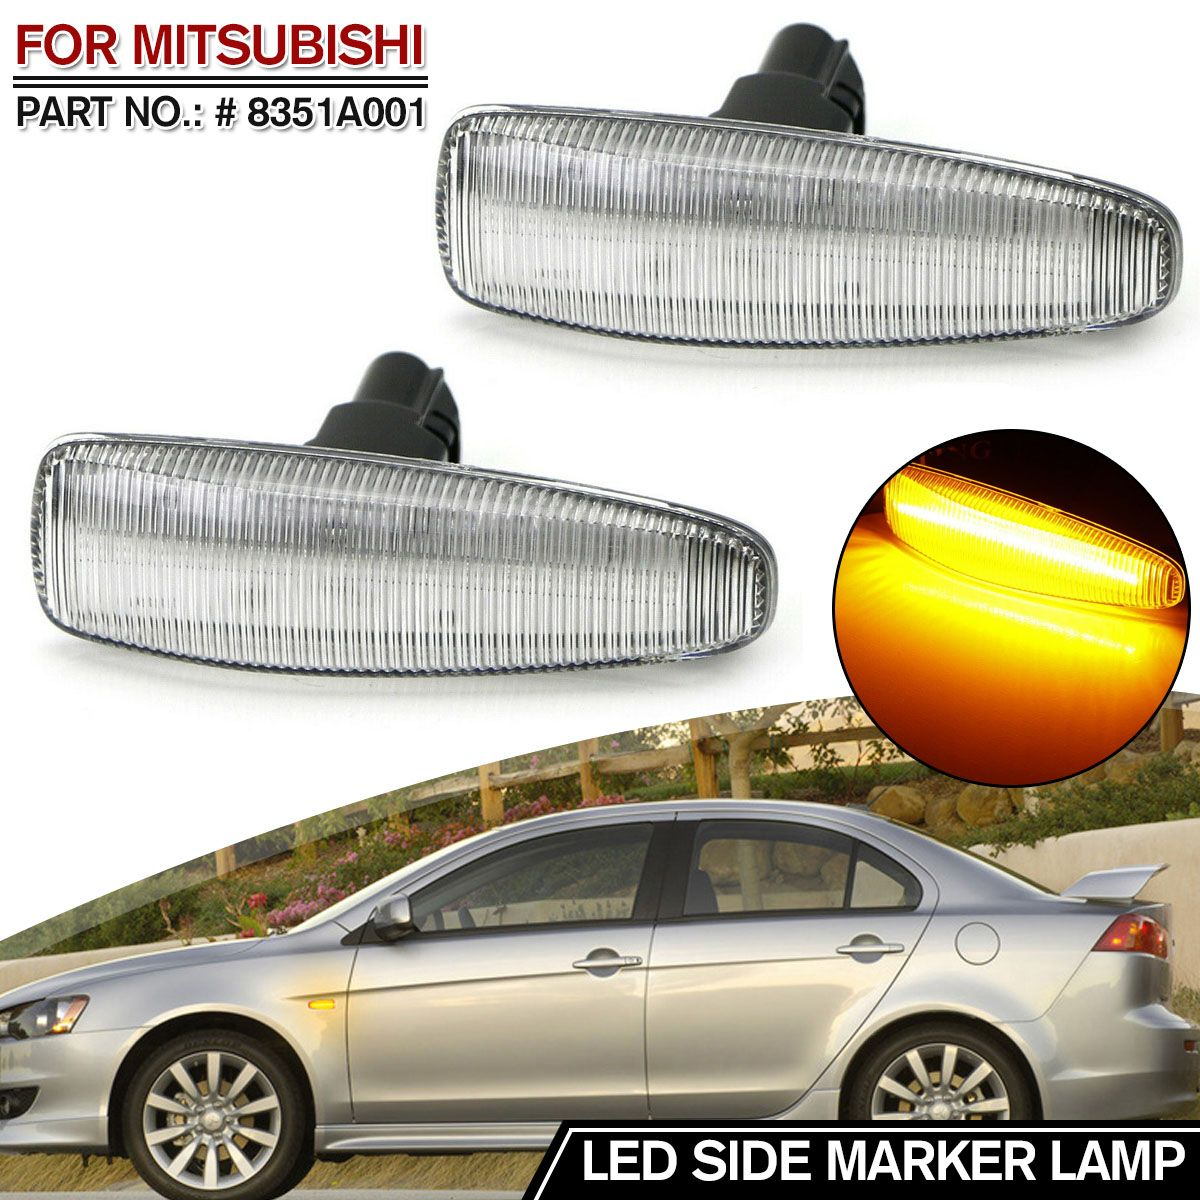 2 pieces Amber <font><b>LED</b></font> Fenders Side Marker Turn Signal Lights Yellow 8351A001 For Mistubish for <font><b>Lancer</b></font> EVO <font><b>X</b></font> Smoke <font><b>LED</b></font> Light image